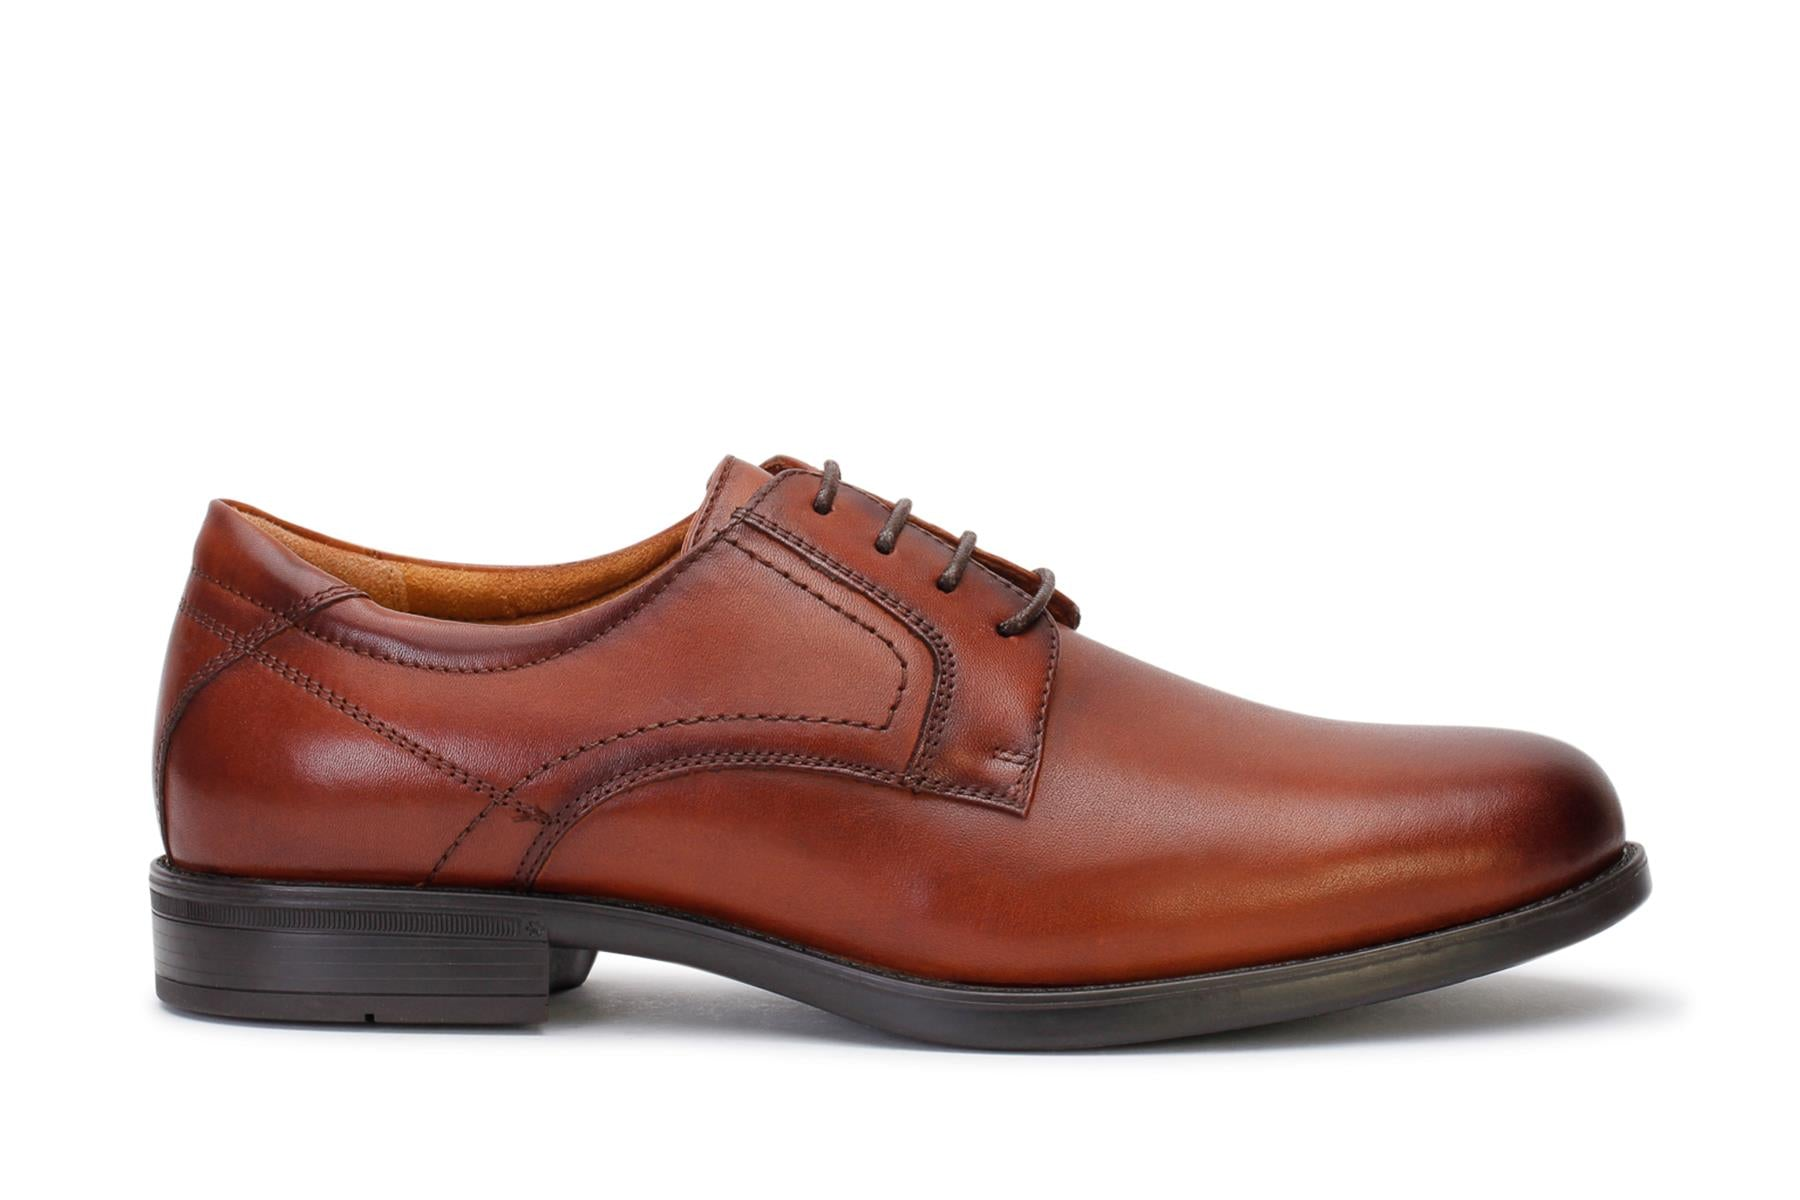 florsheim-mens-dress-shoes-midtown-plain-toe-oxford-cognac-leather-main